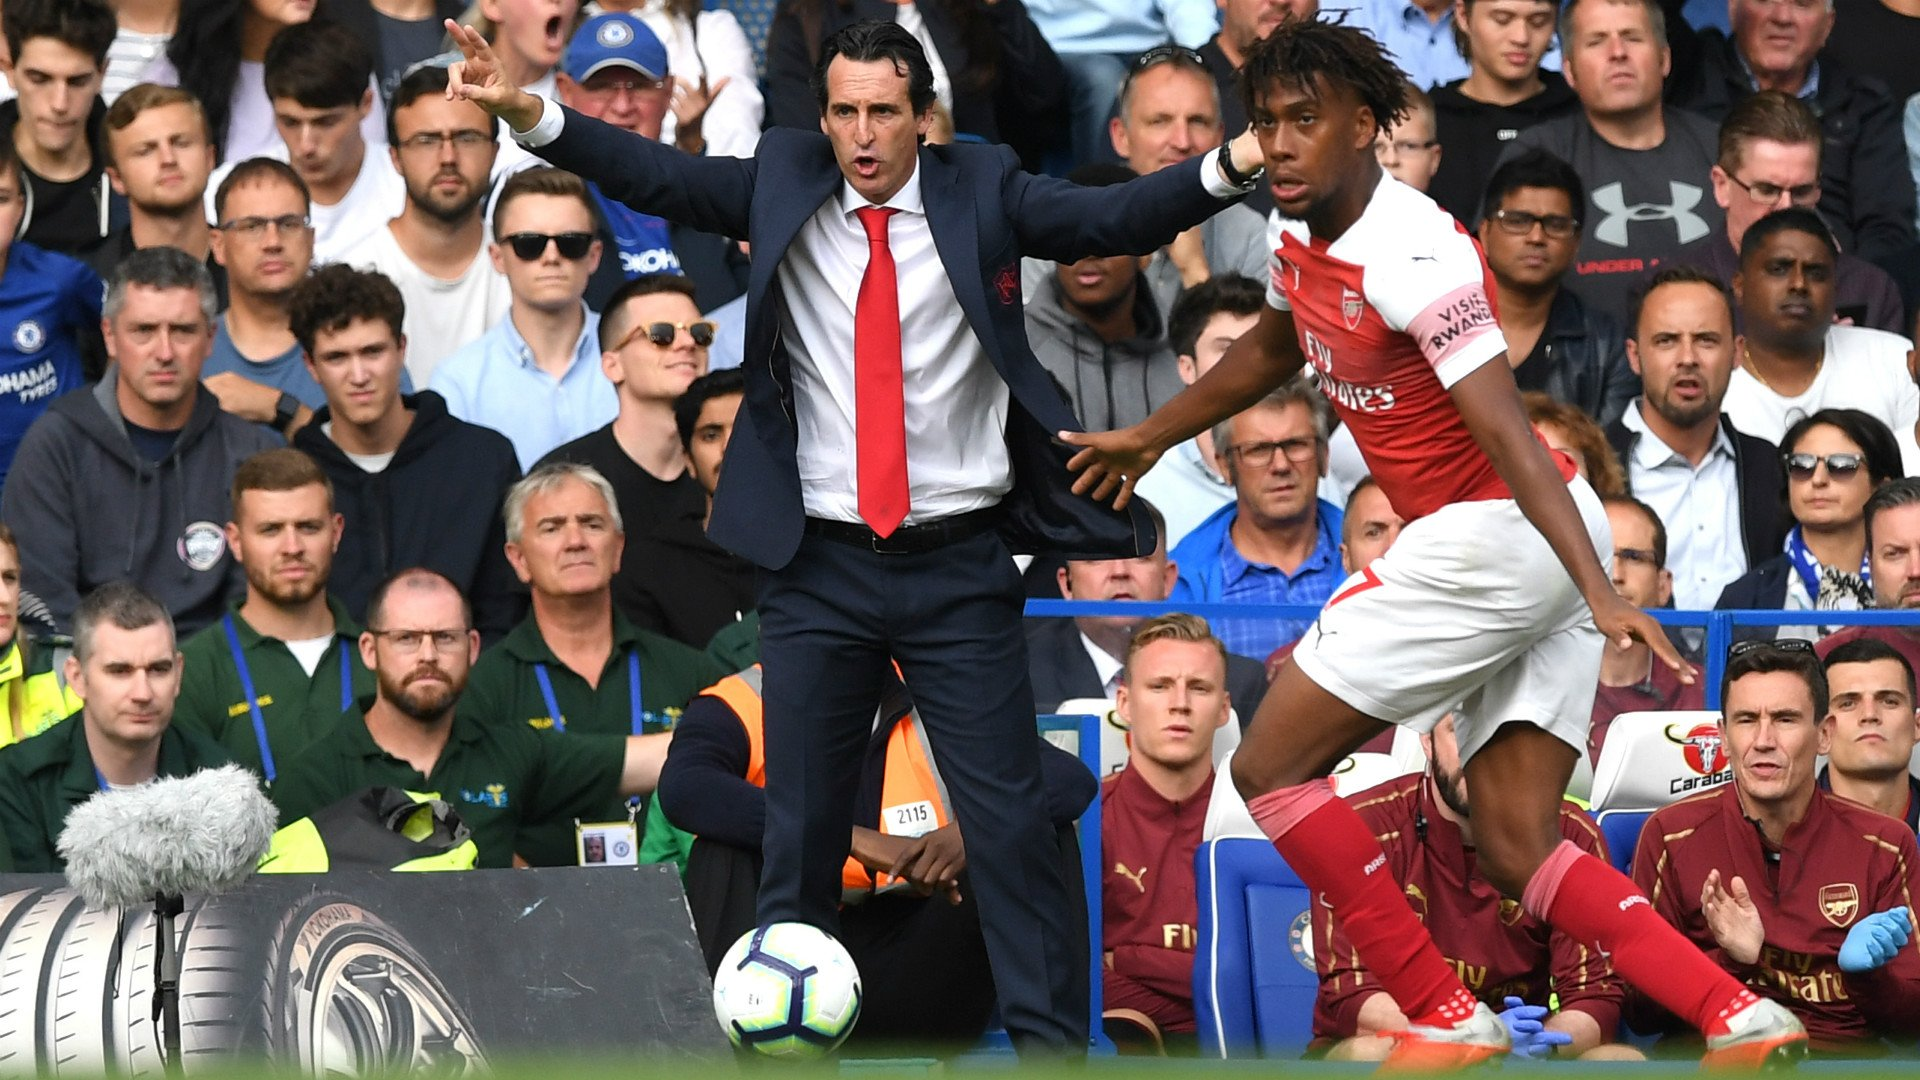 English Premier League: Mkhitaryan stats in Arsenal clash against Chelsea